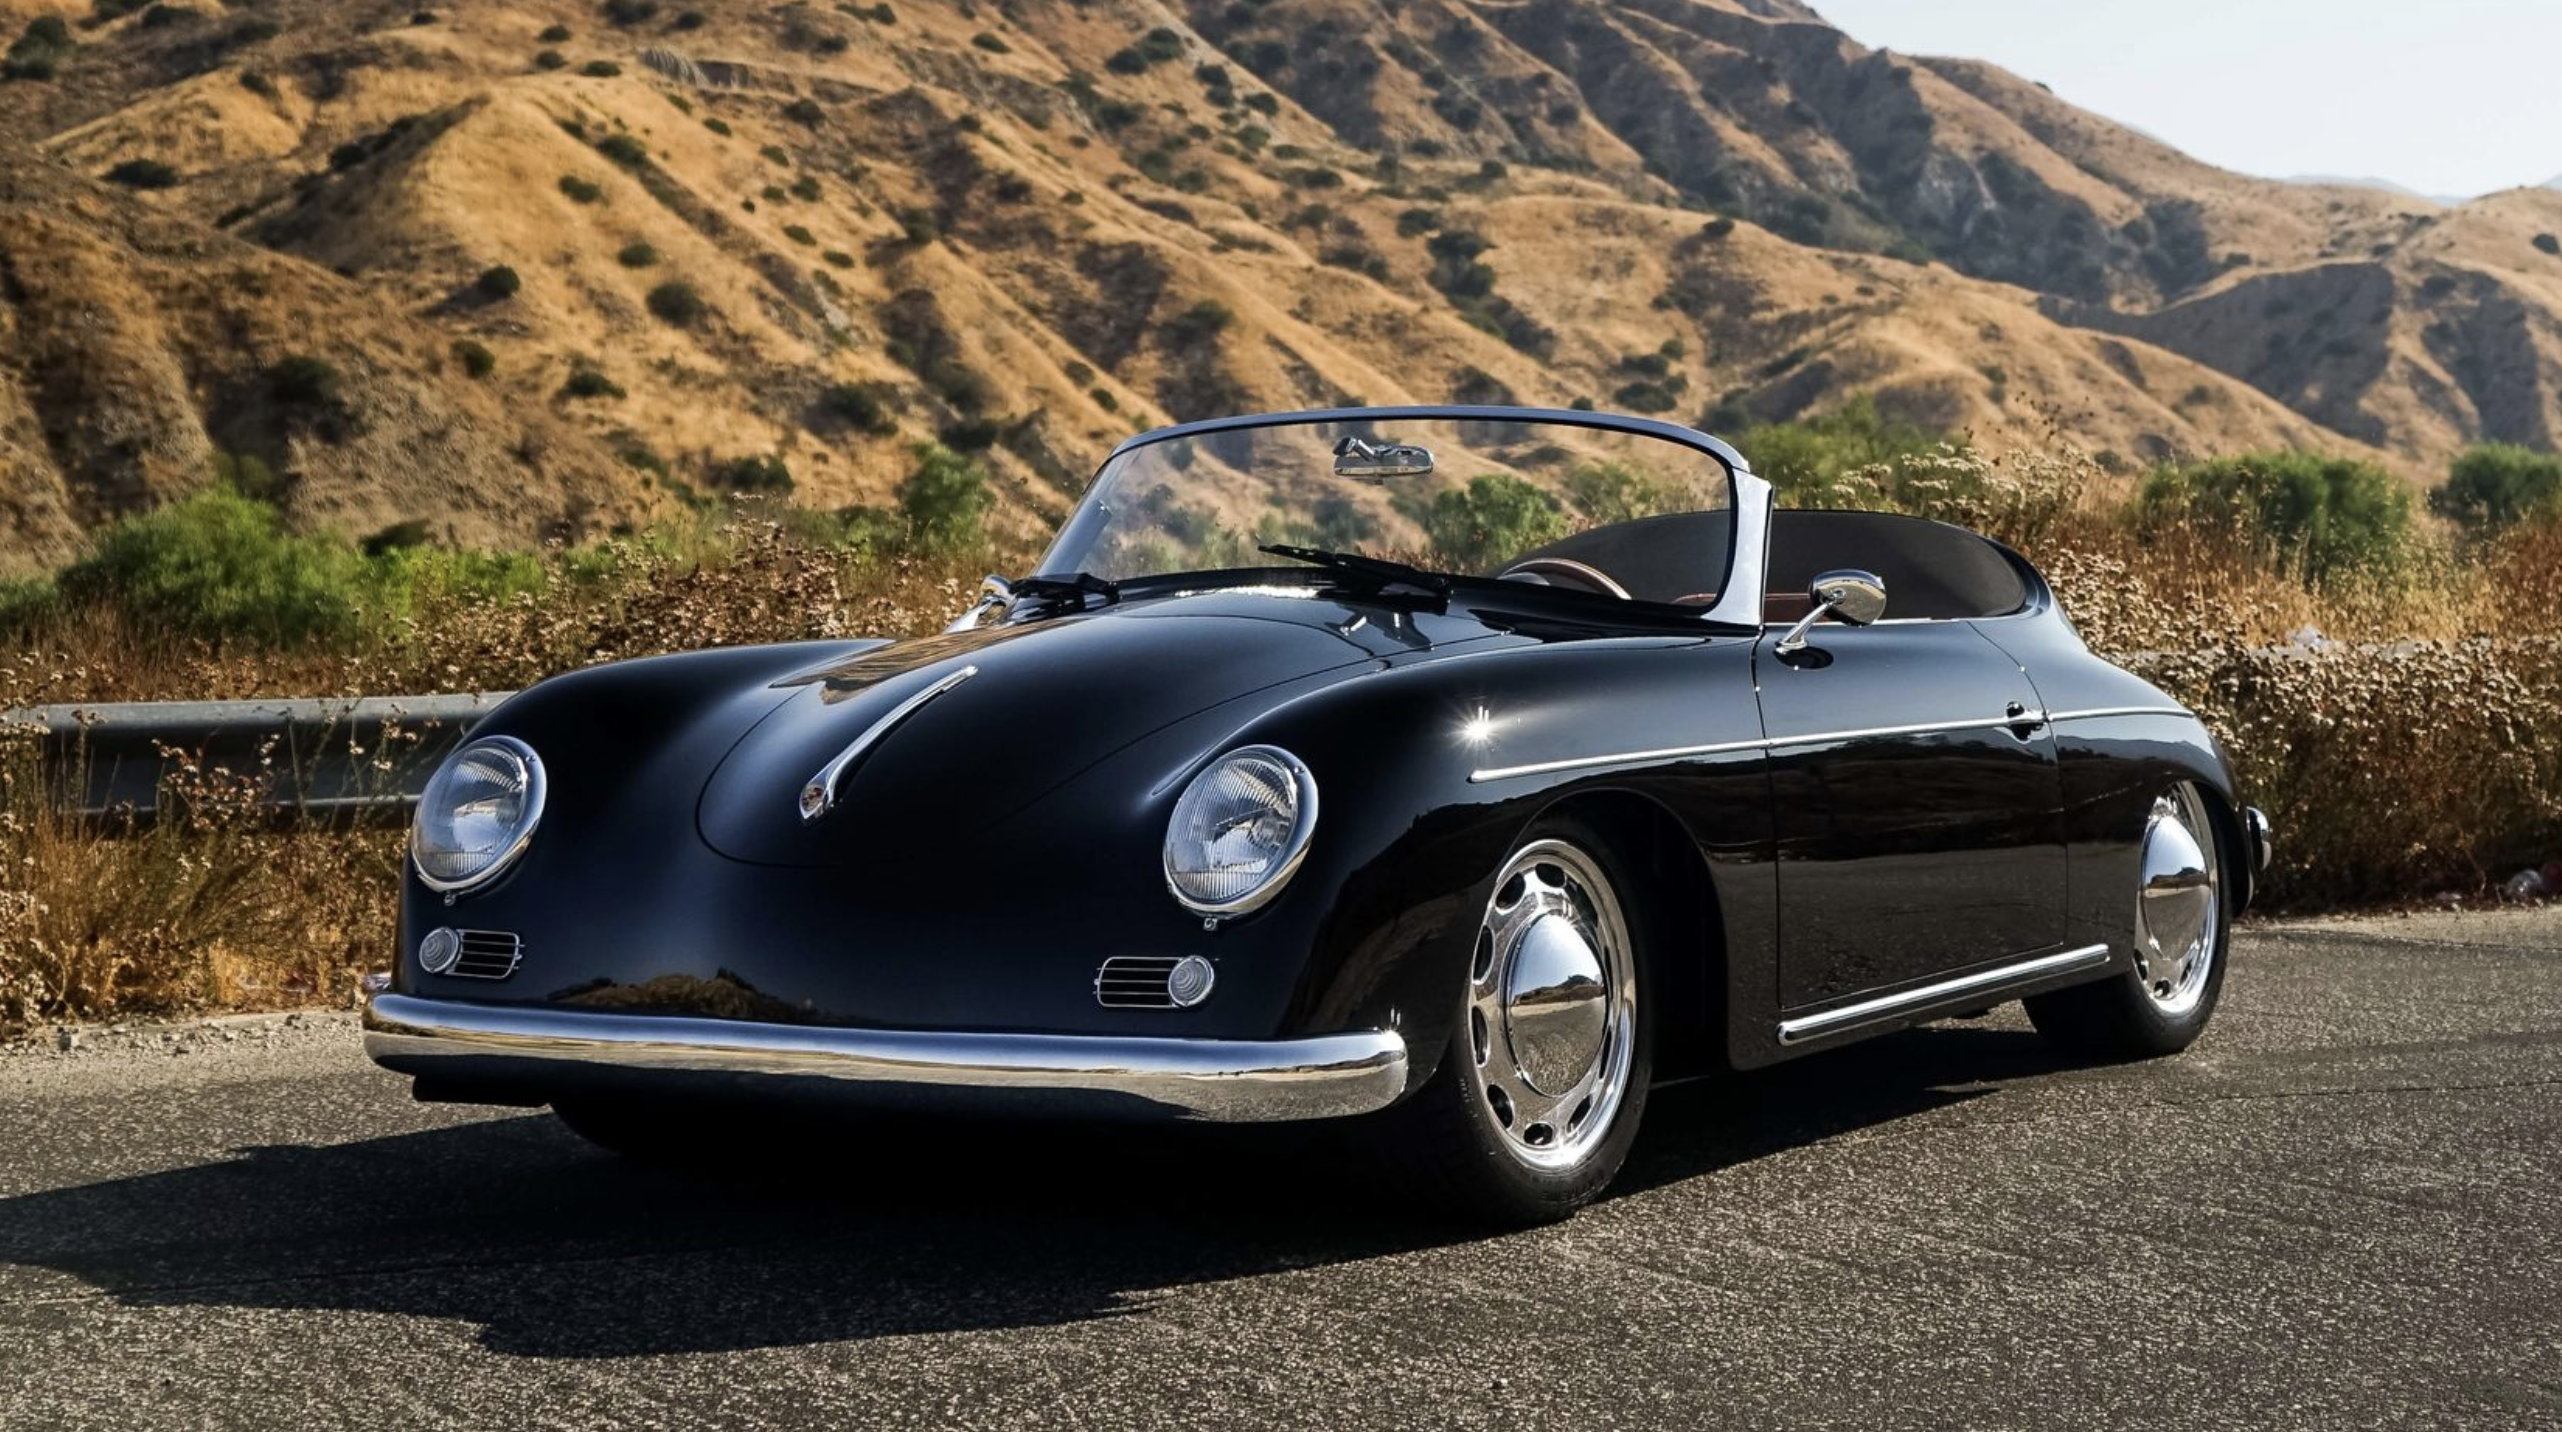 West Coast Customs 1965 Porsche 356 Restomod